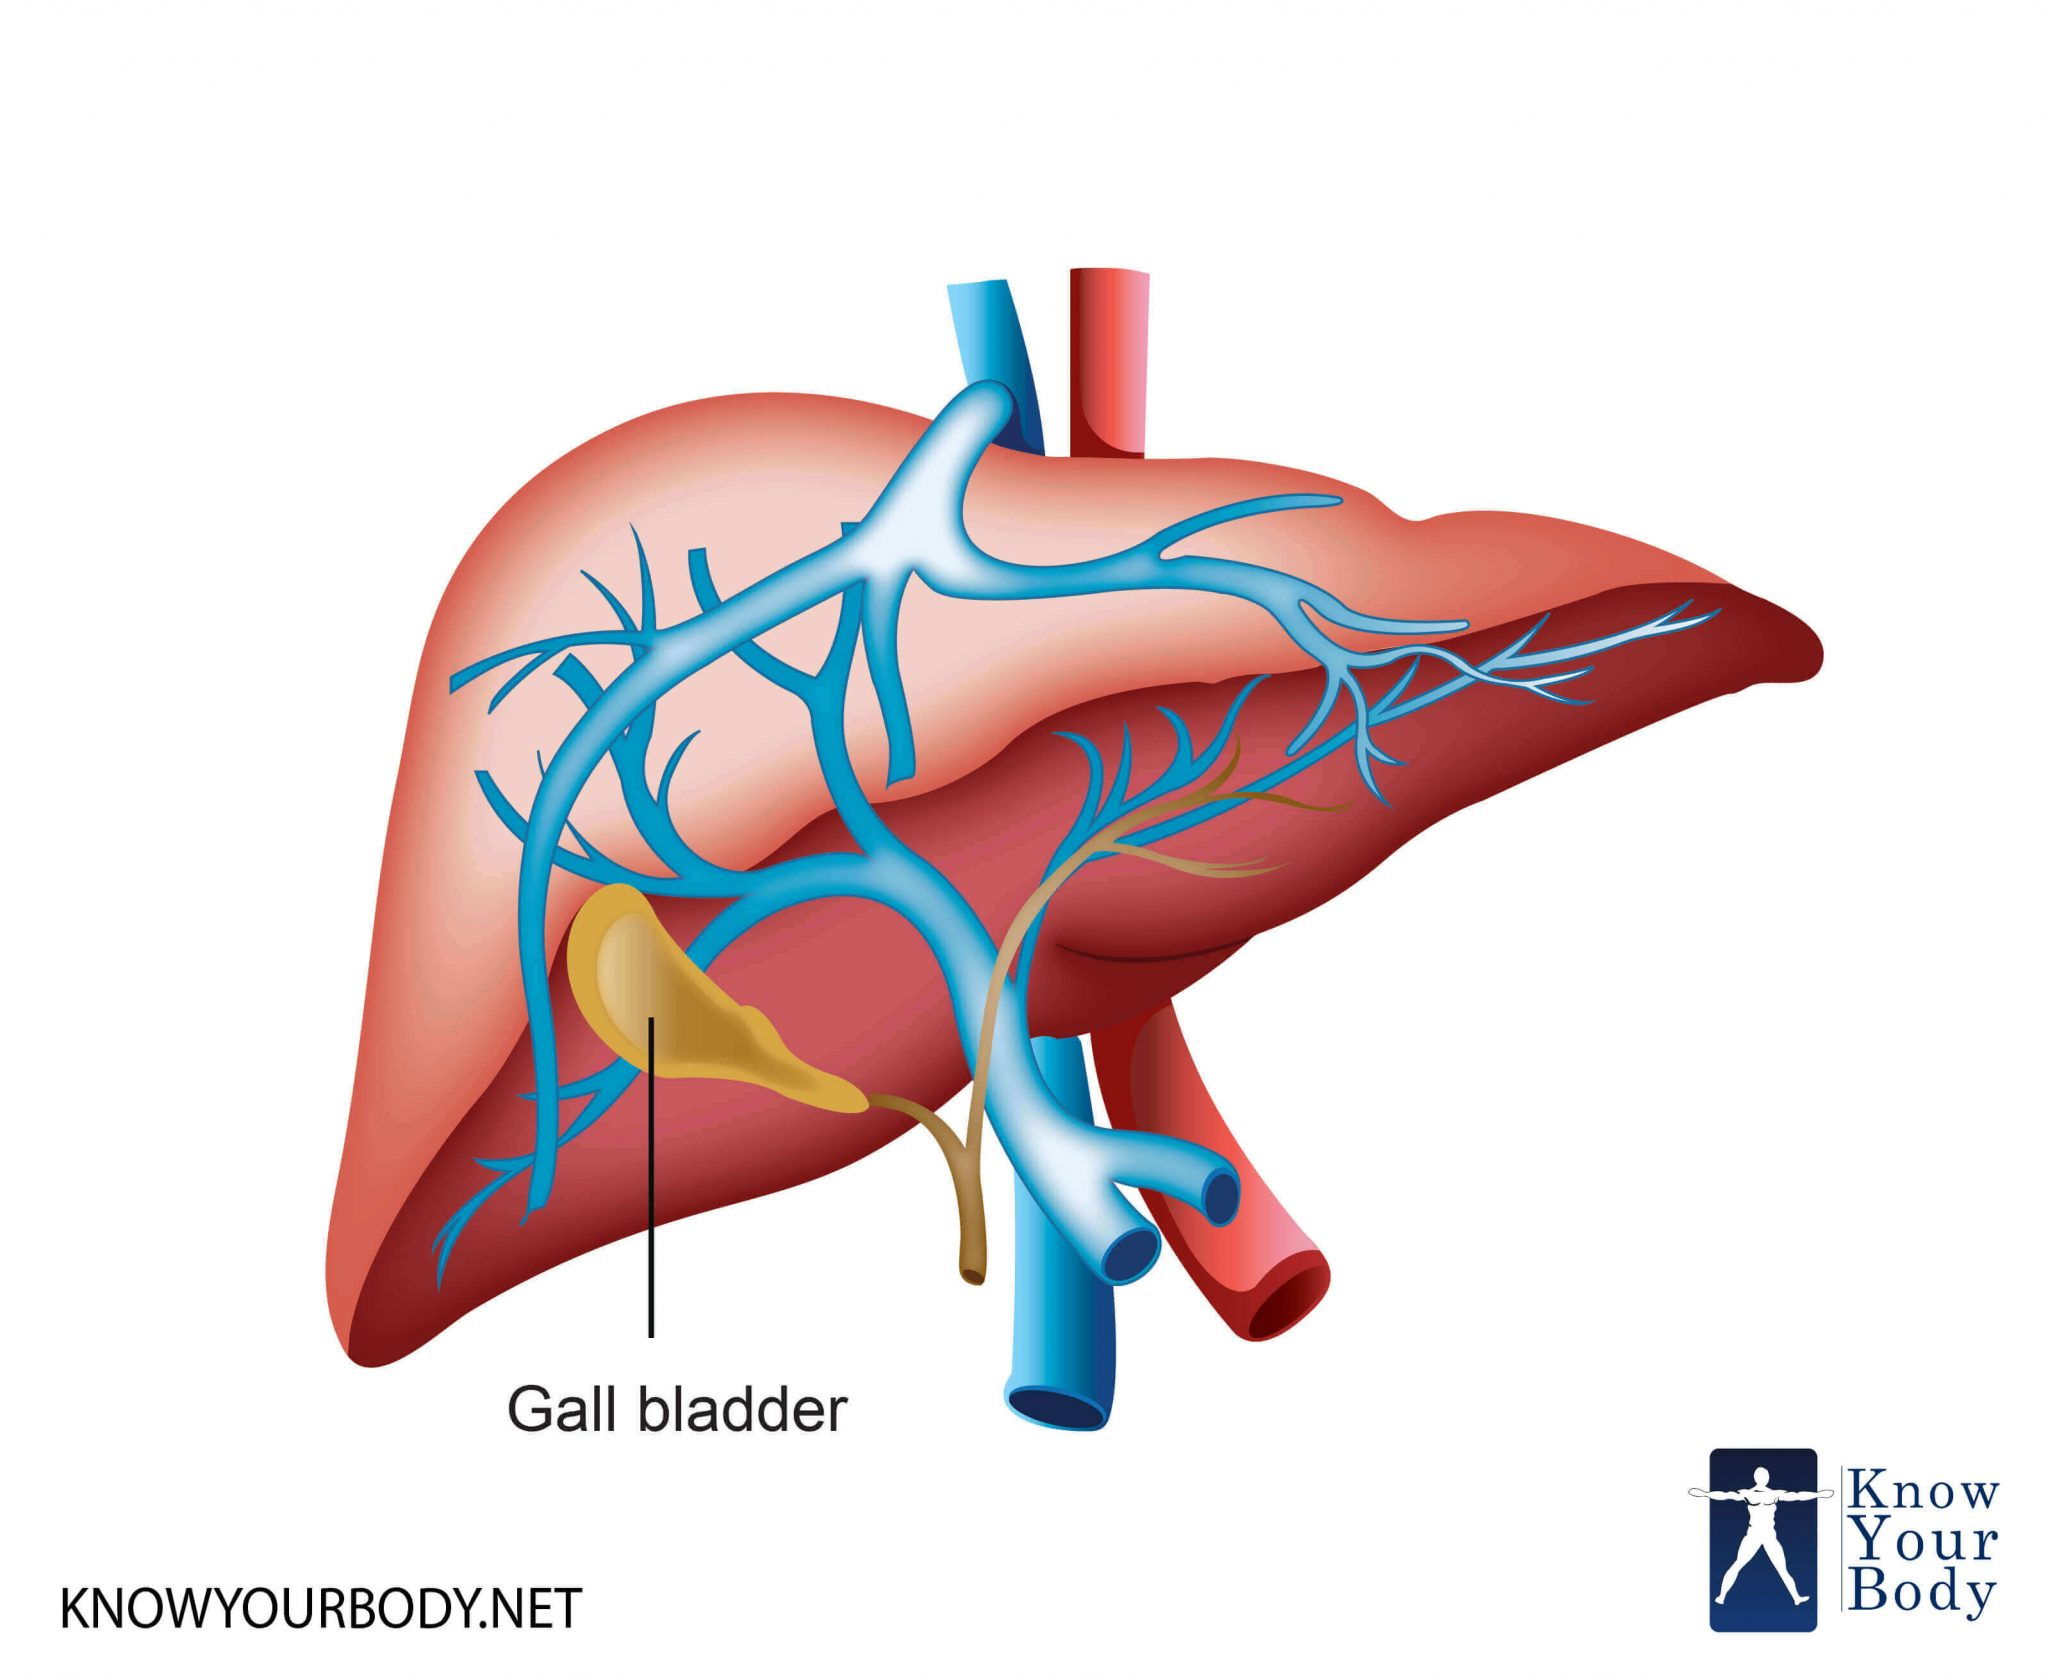 Gallbladder - Location, Function, Anatomy, Pictures and FAQs